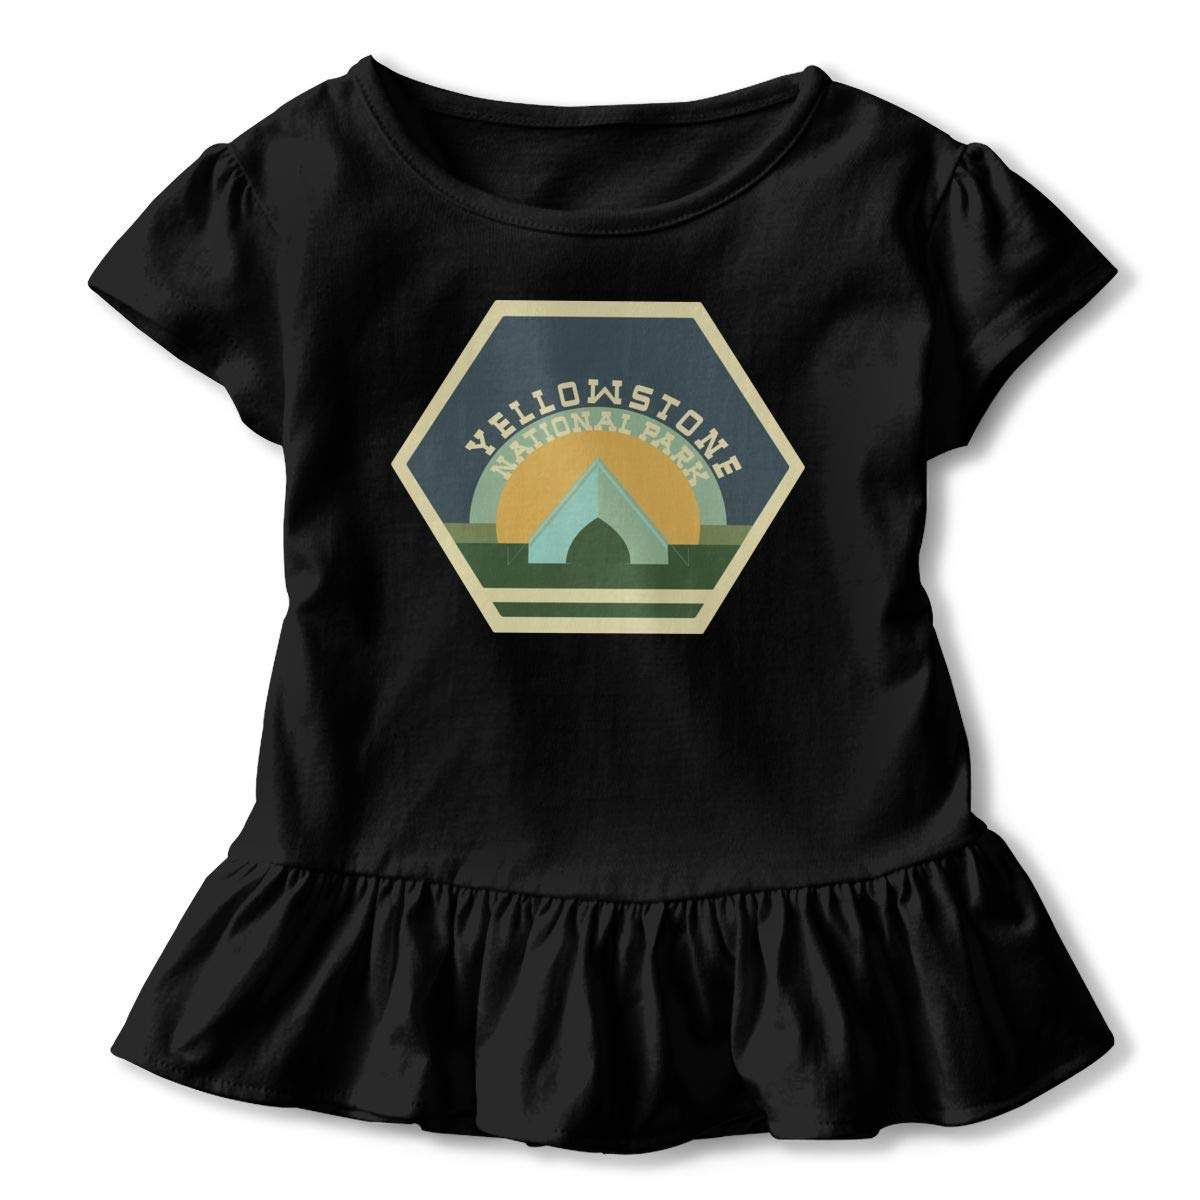 Yellowstone National Park Shirt Printed Toddler Flounced T Shirts Outfits for 2-6T Baby Girls